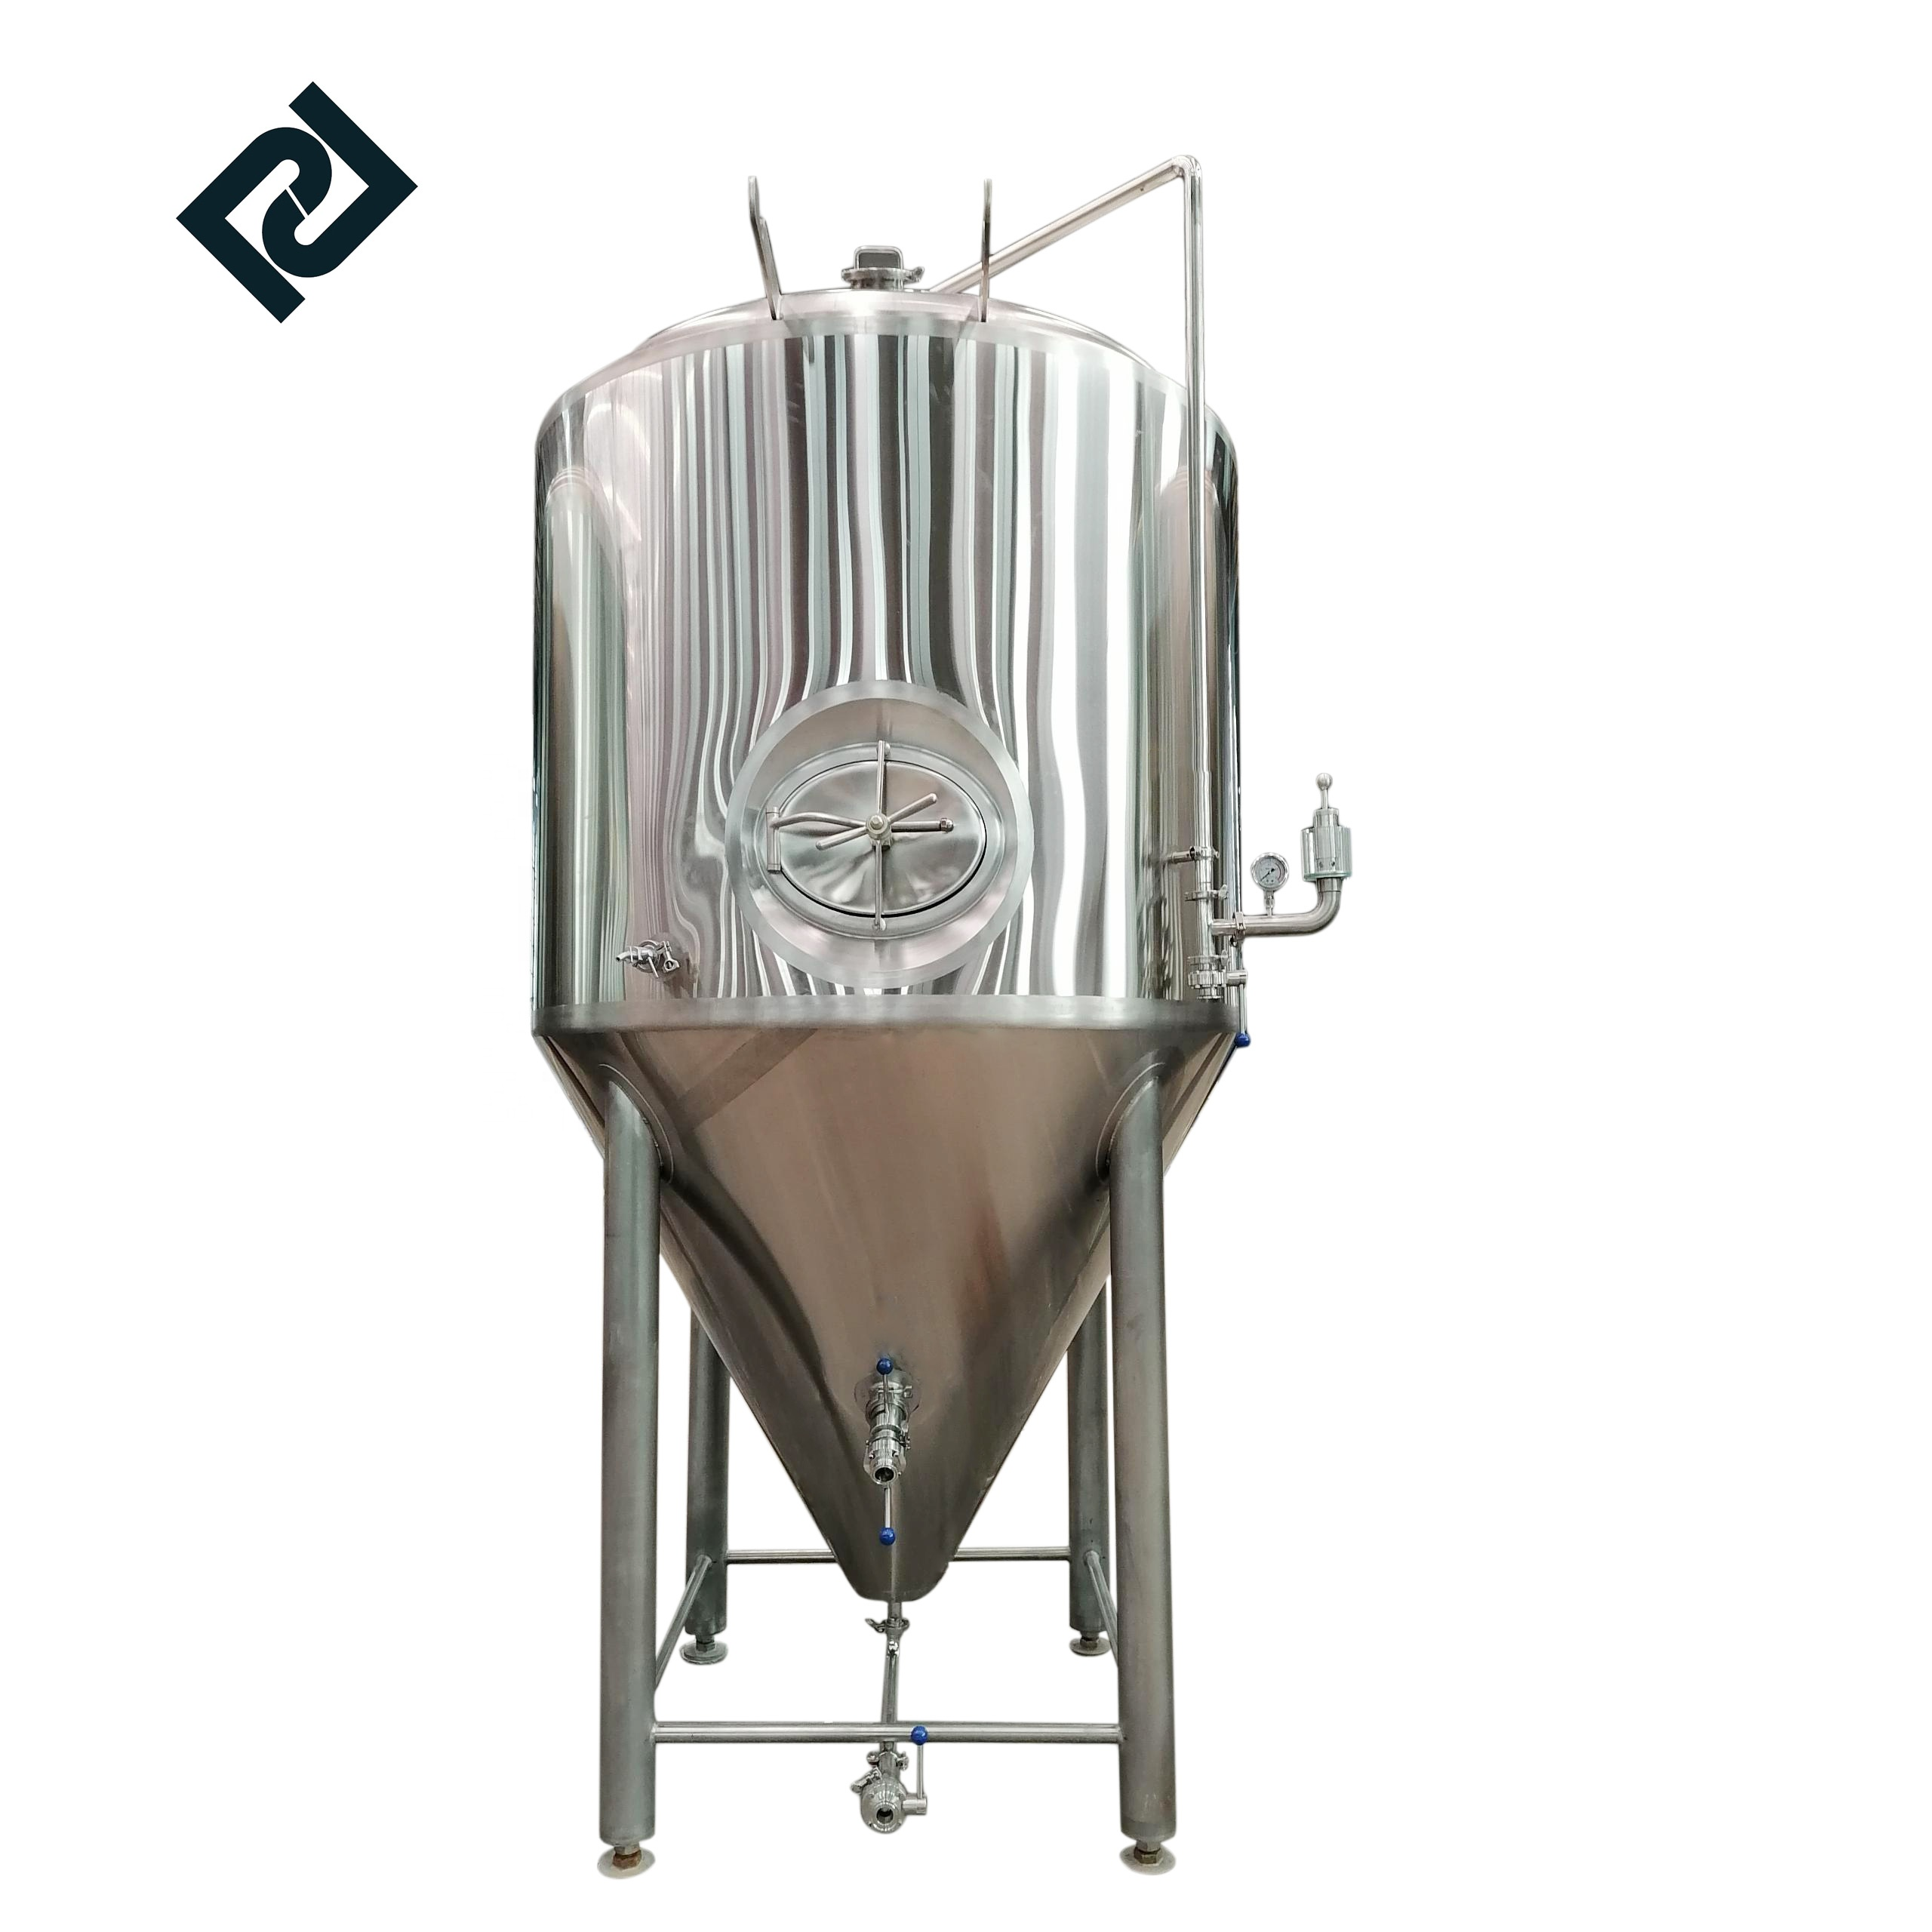 3bbl 5bbl 10bbl 15bbl 20bbl micro beer brewery fermentation equipment commercial beer brewing equipment